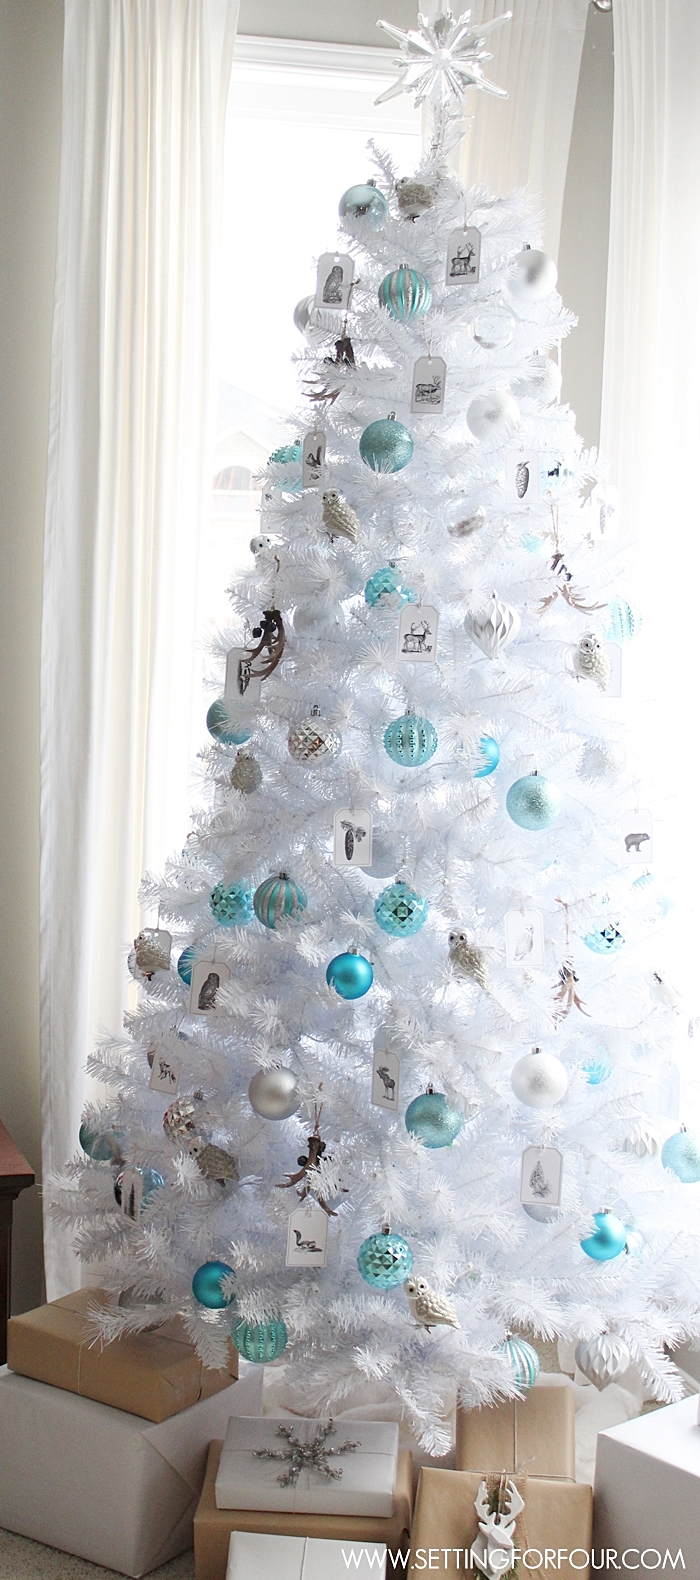 18 creative christmas tree decorating ideas - White Christmas Tree Decoration Ideas